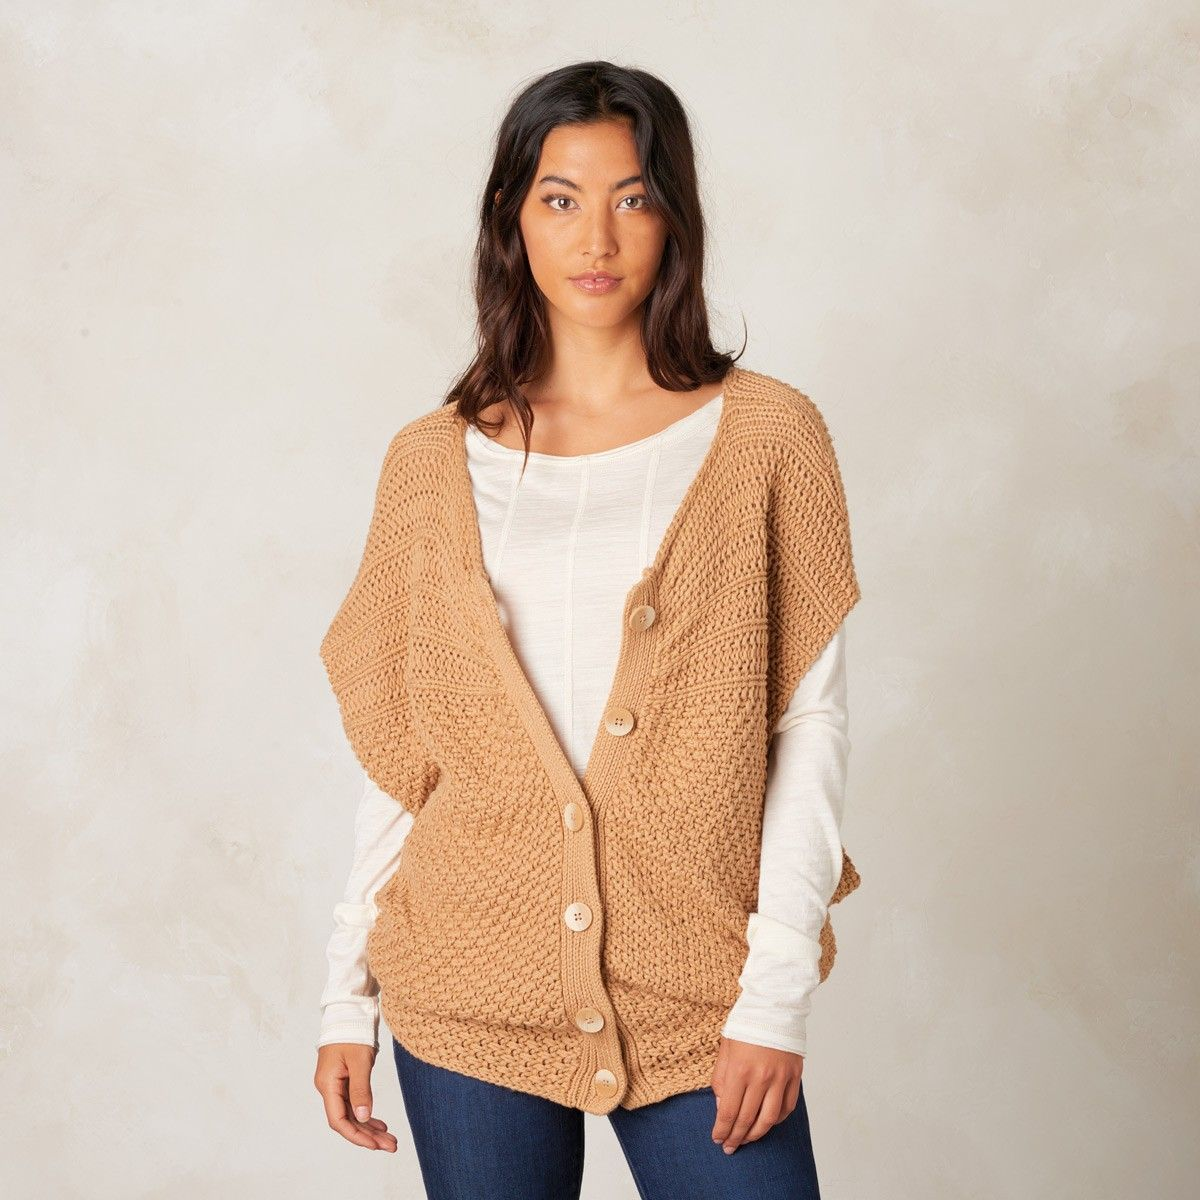 prAna - Estee Sweater Vest. Cute vest, don't like color but love ...